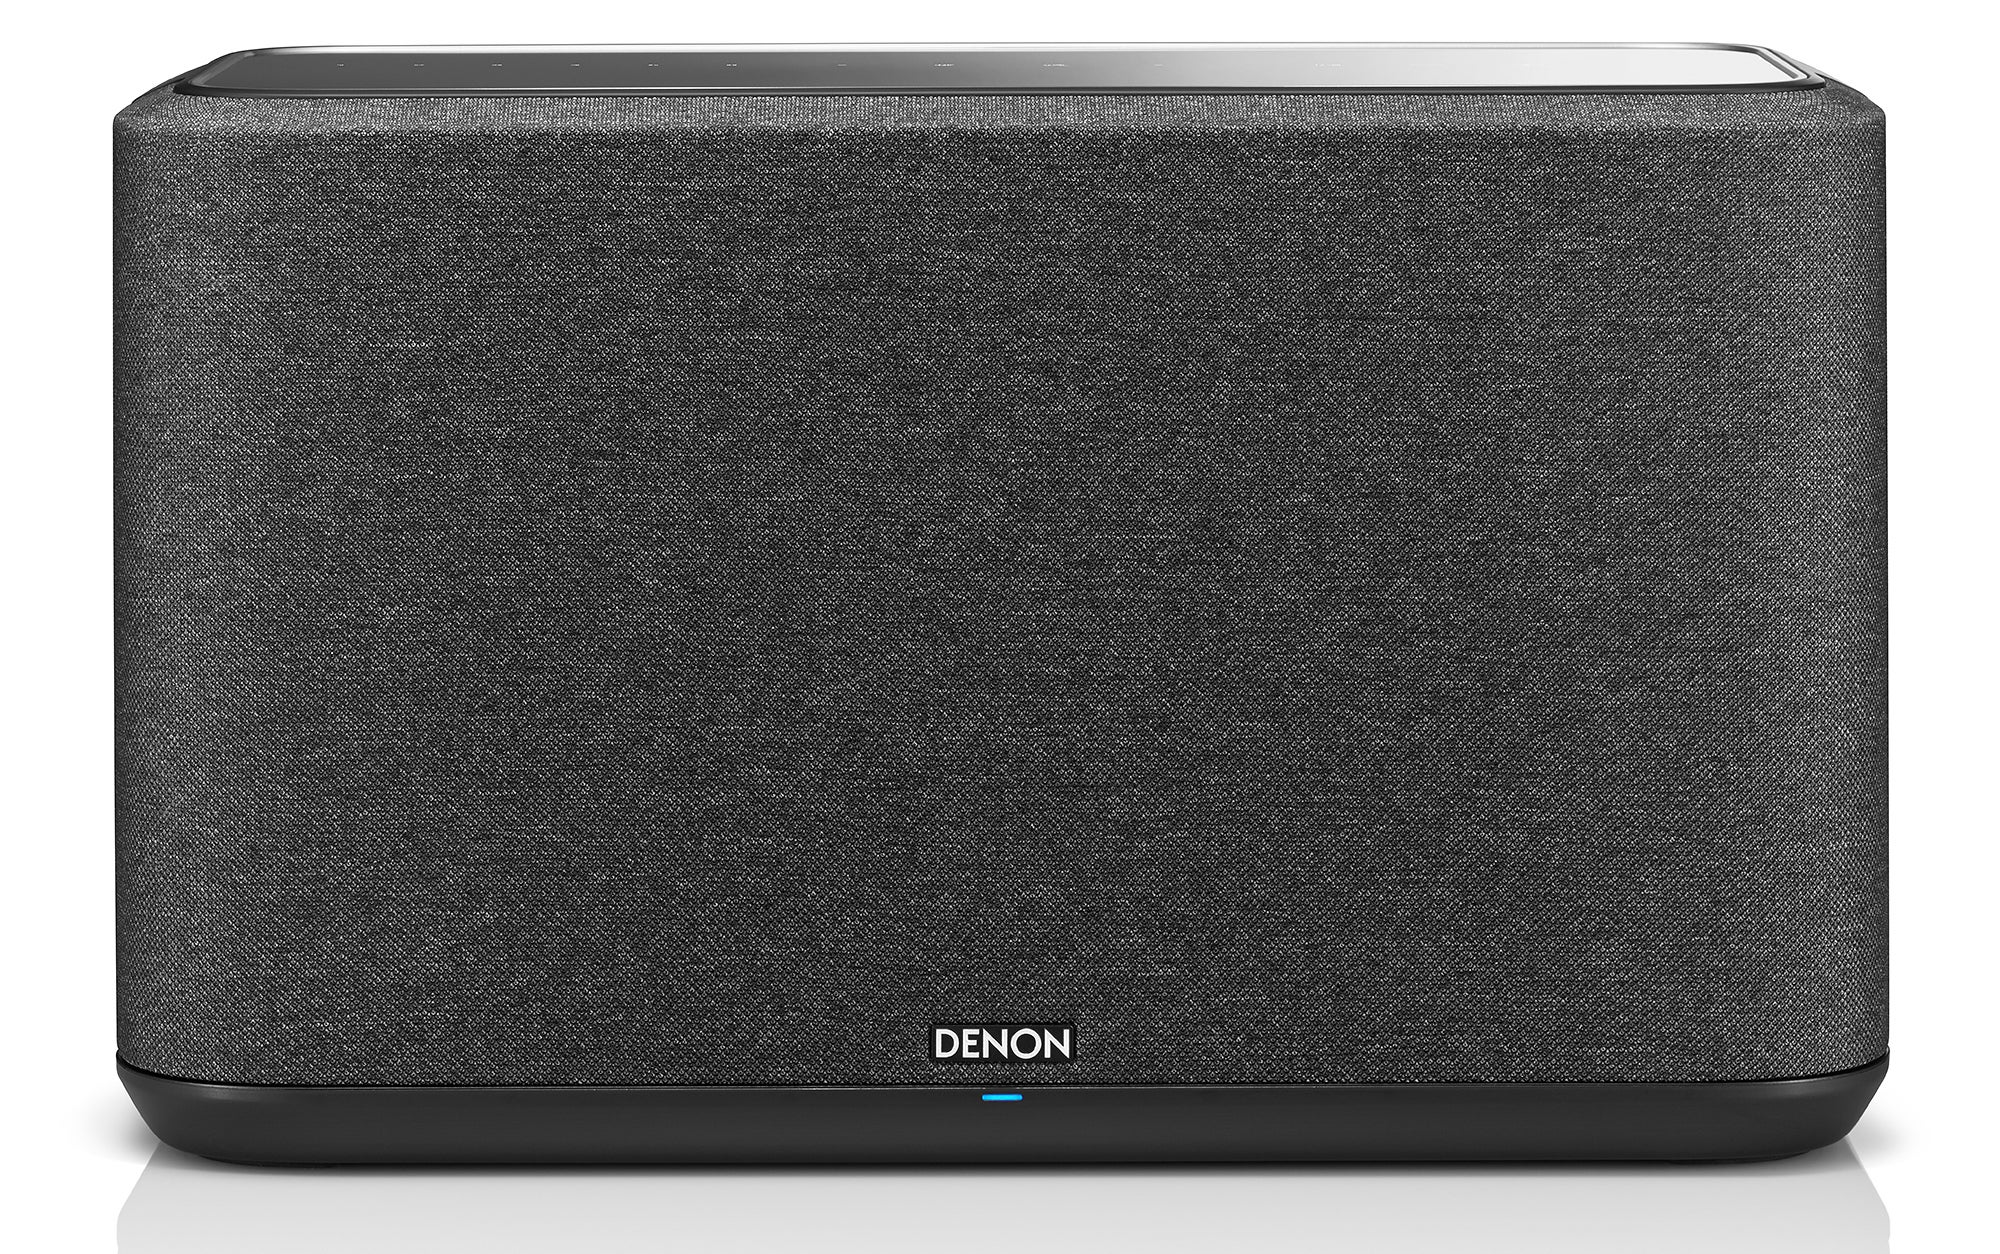 Denon Home 350 Review | Trusted Reviews